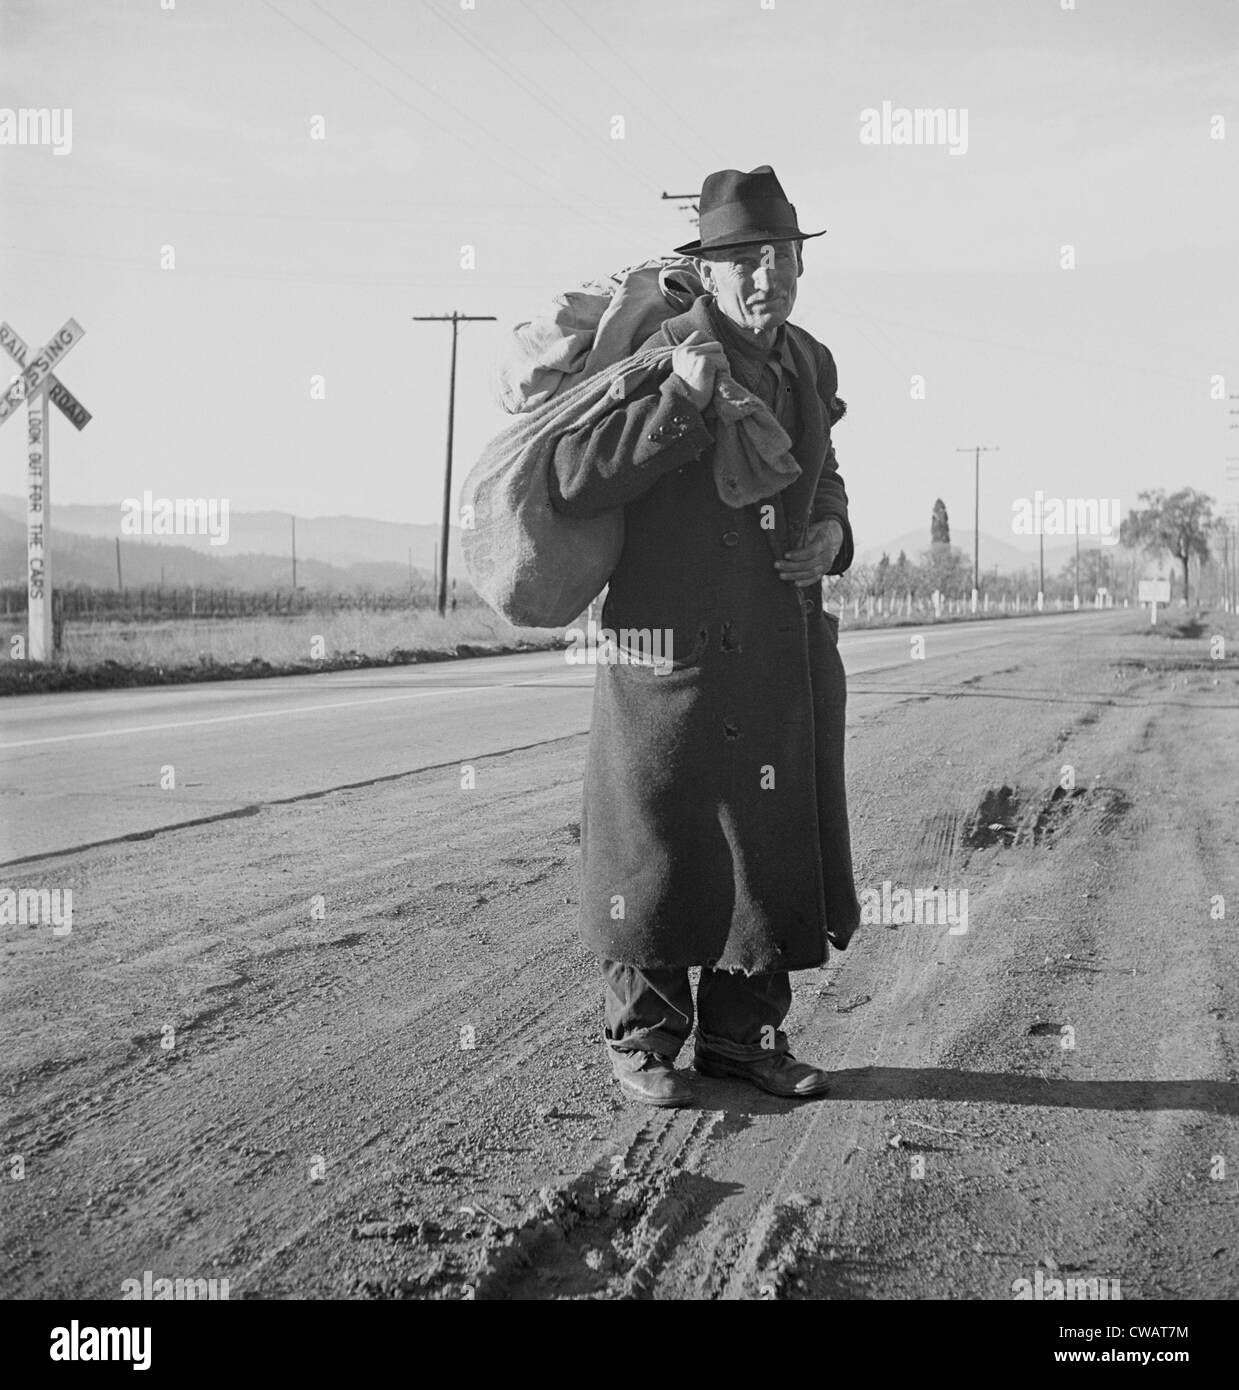 The Great Depression. Itinerant worker, traveling by foot, looking for work in mines, lumber camps, or farms. He Stock Photo